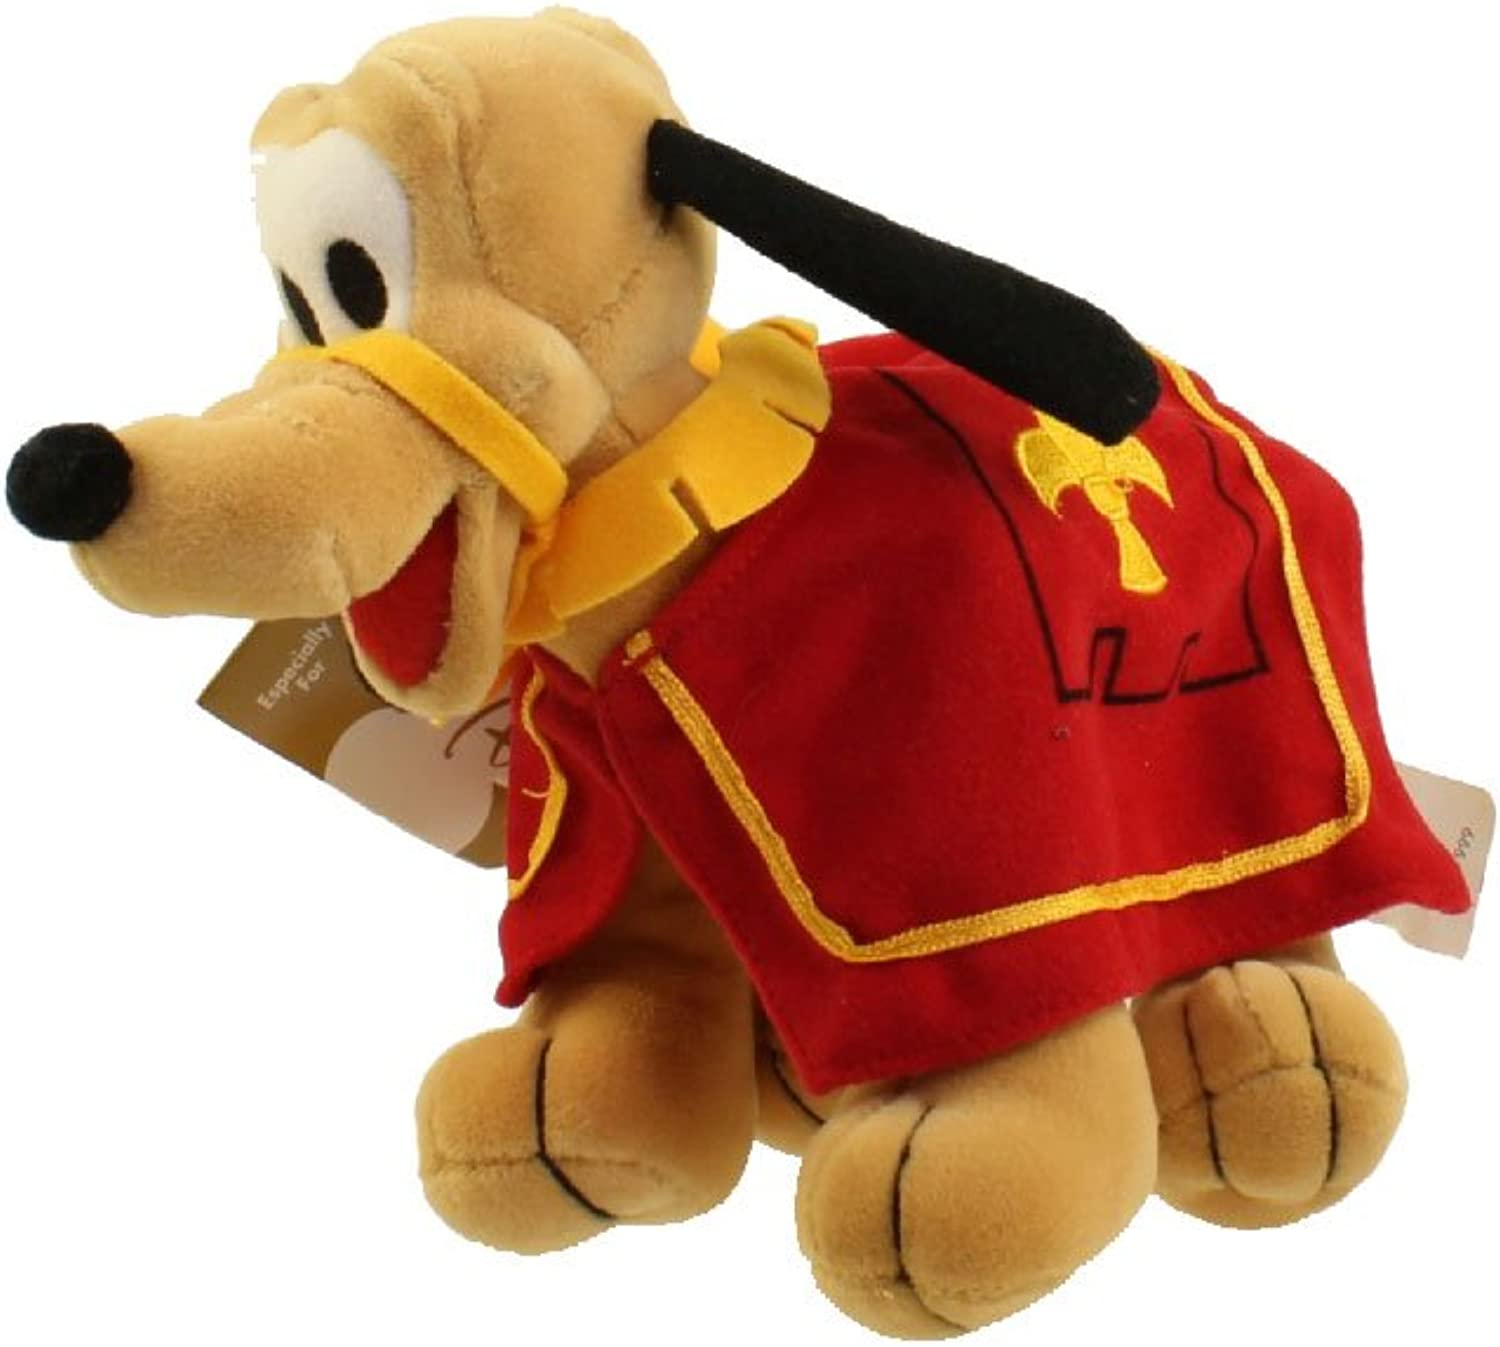 Disney Pluto Pferd 8 Bean Bag